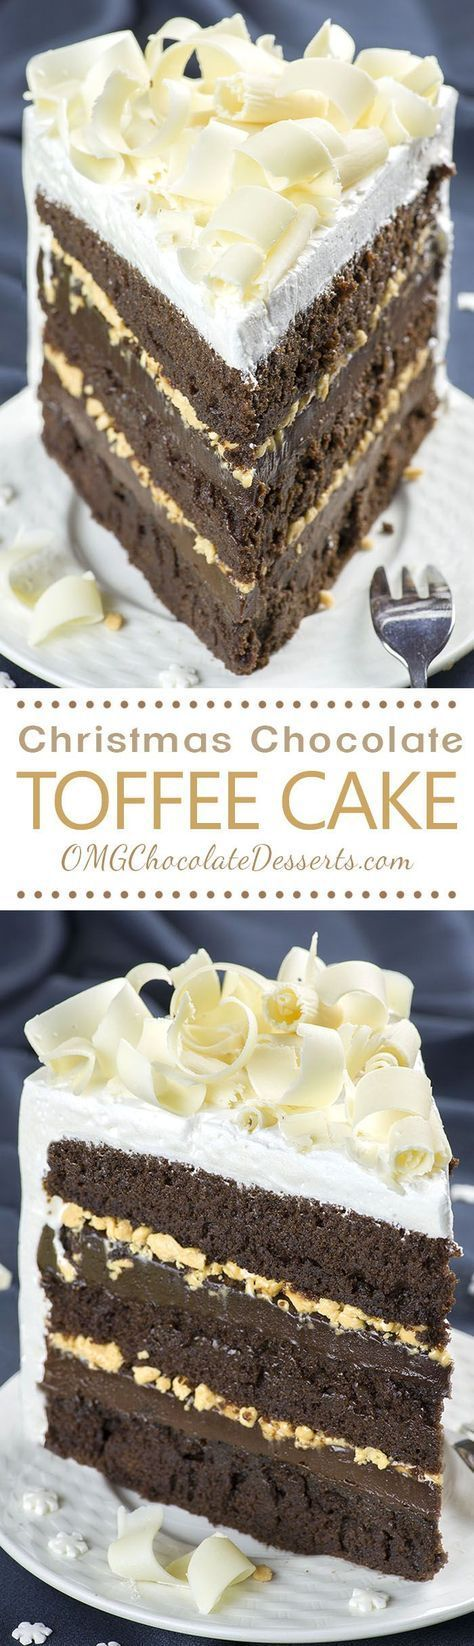 Needless to say, this Christmas Chocolate Toffee Cake is a chocolate lovers dream and fancy enough to take a central place on your Christmas table!